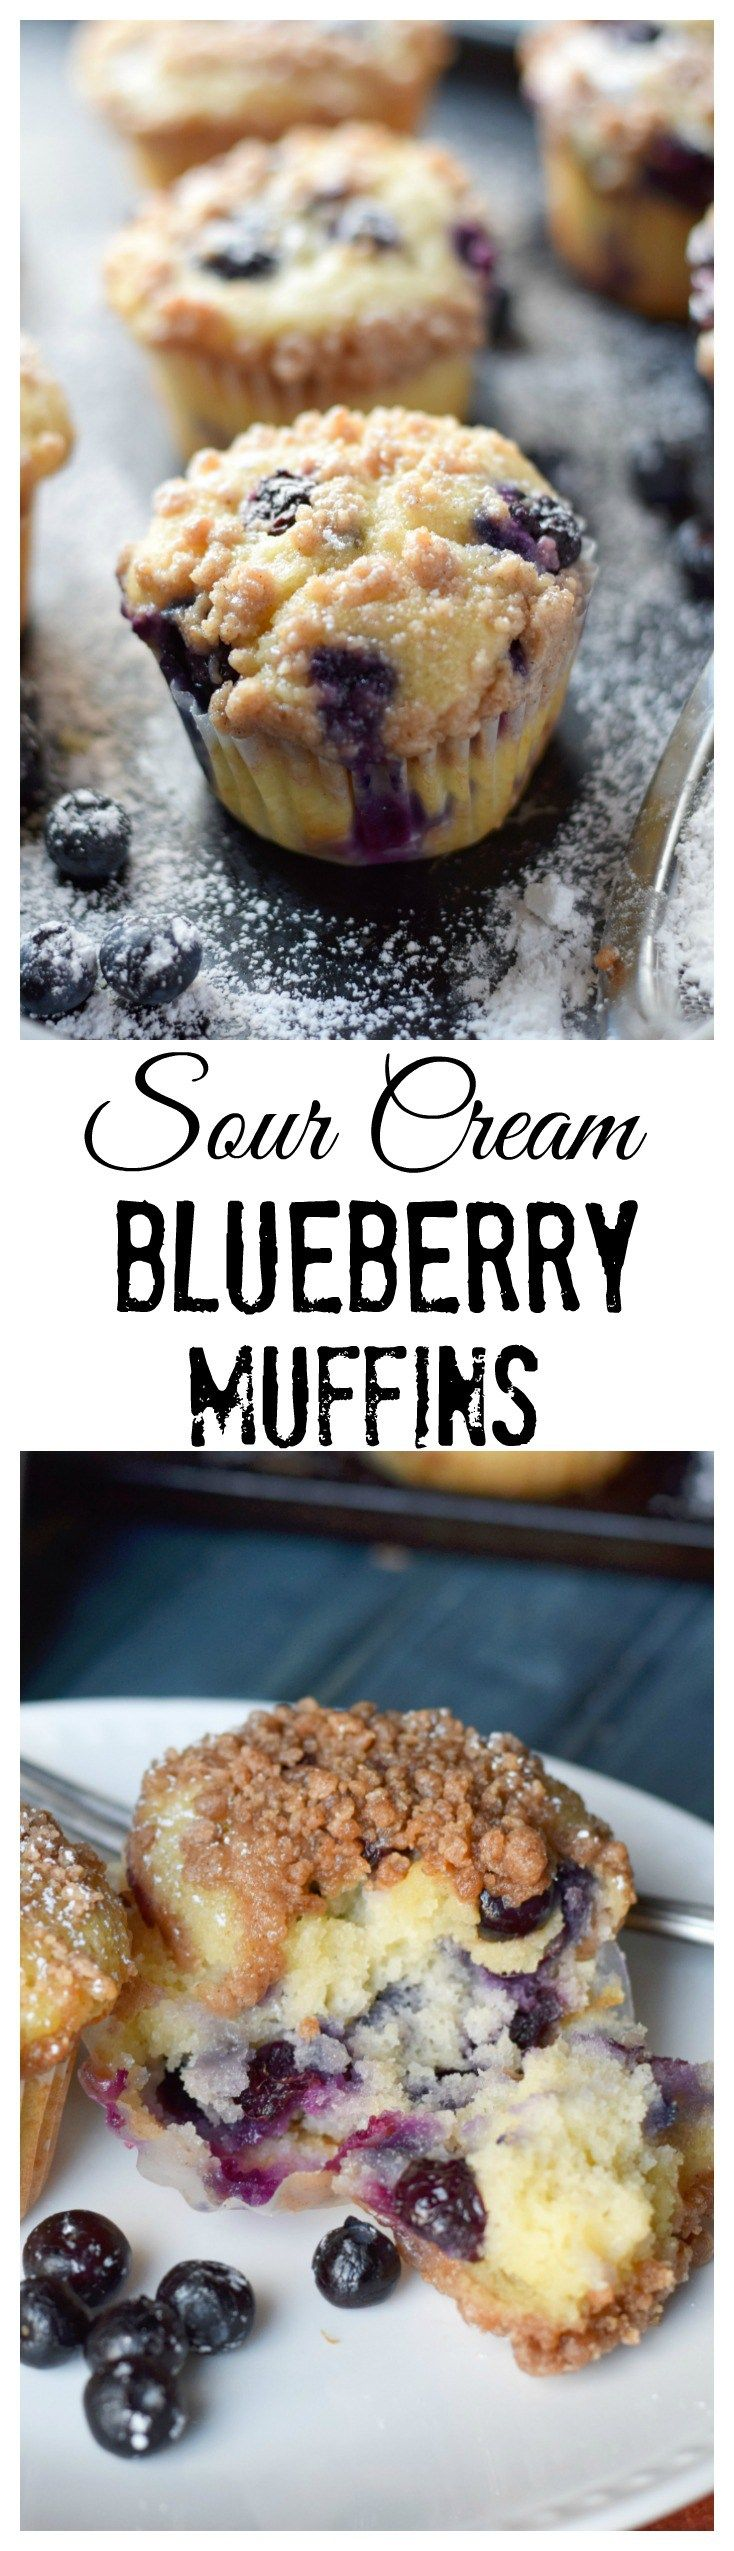 These sour cream blueberry muffins are super moist and loaded with blueberries.